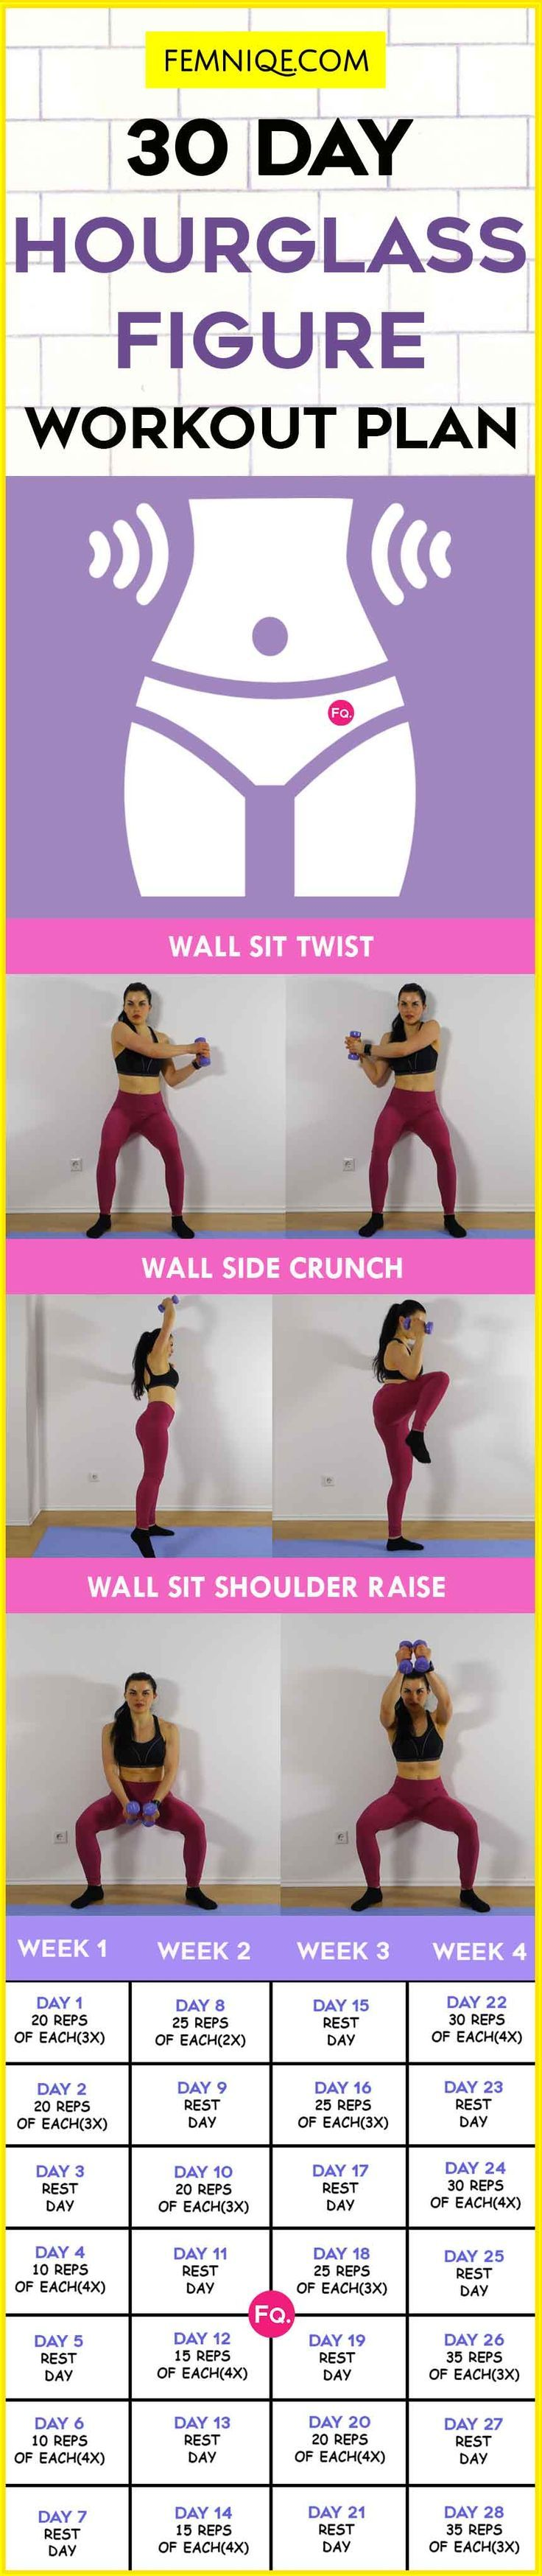 4 week workouts plan that will build full-body strength, set fire to calories, and no gym or equipment needed to be fit.